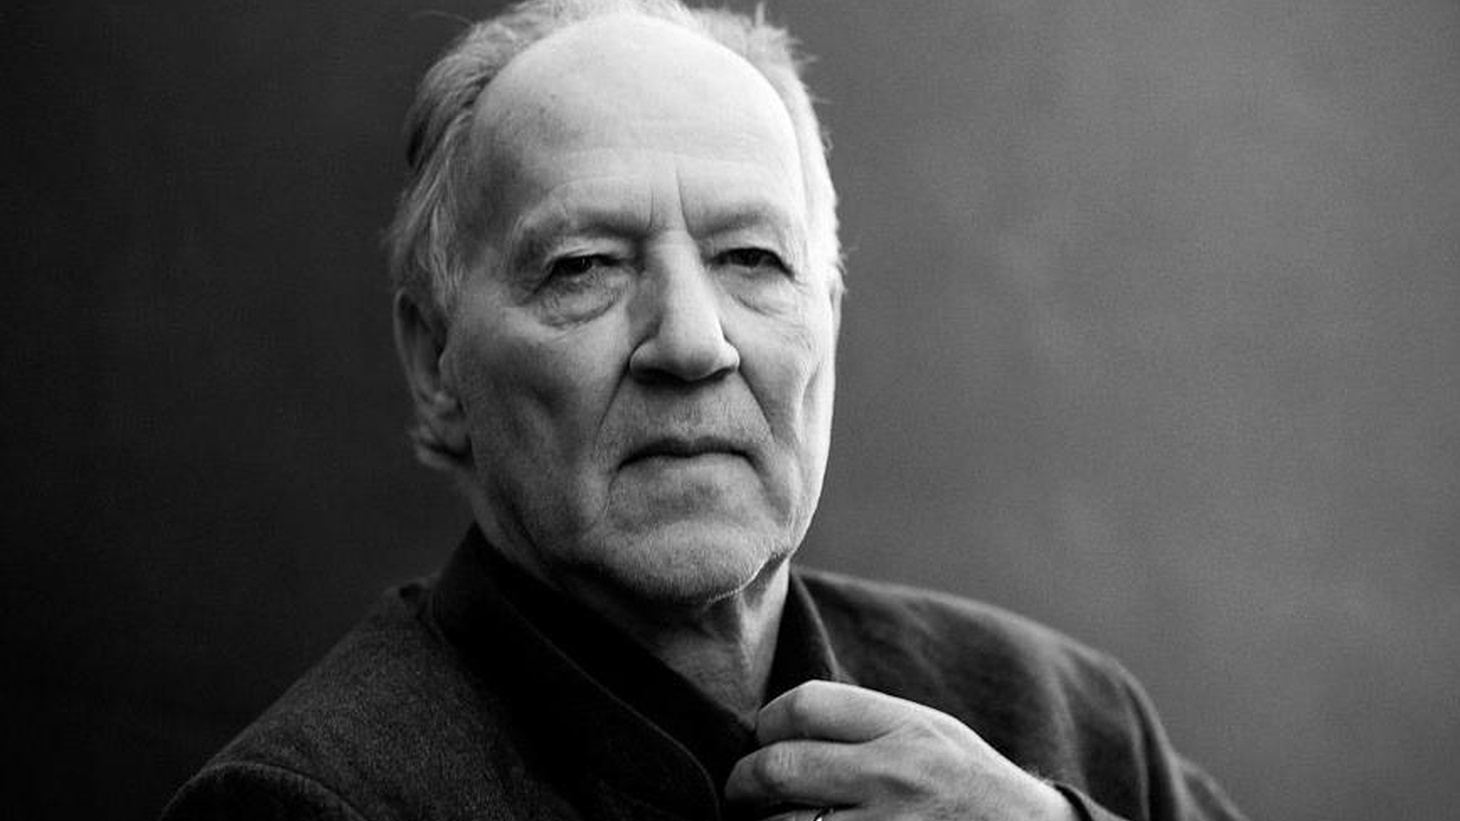 We re-air our in-depth conversation with filmmaker Werner Herzog. And we get some creative inspiration from Pixar animator Austin Madison and from Willie Downs-- the blogger behind the Animators Letters Project.